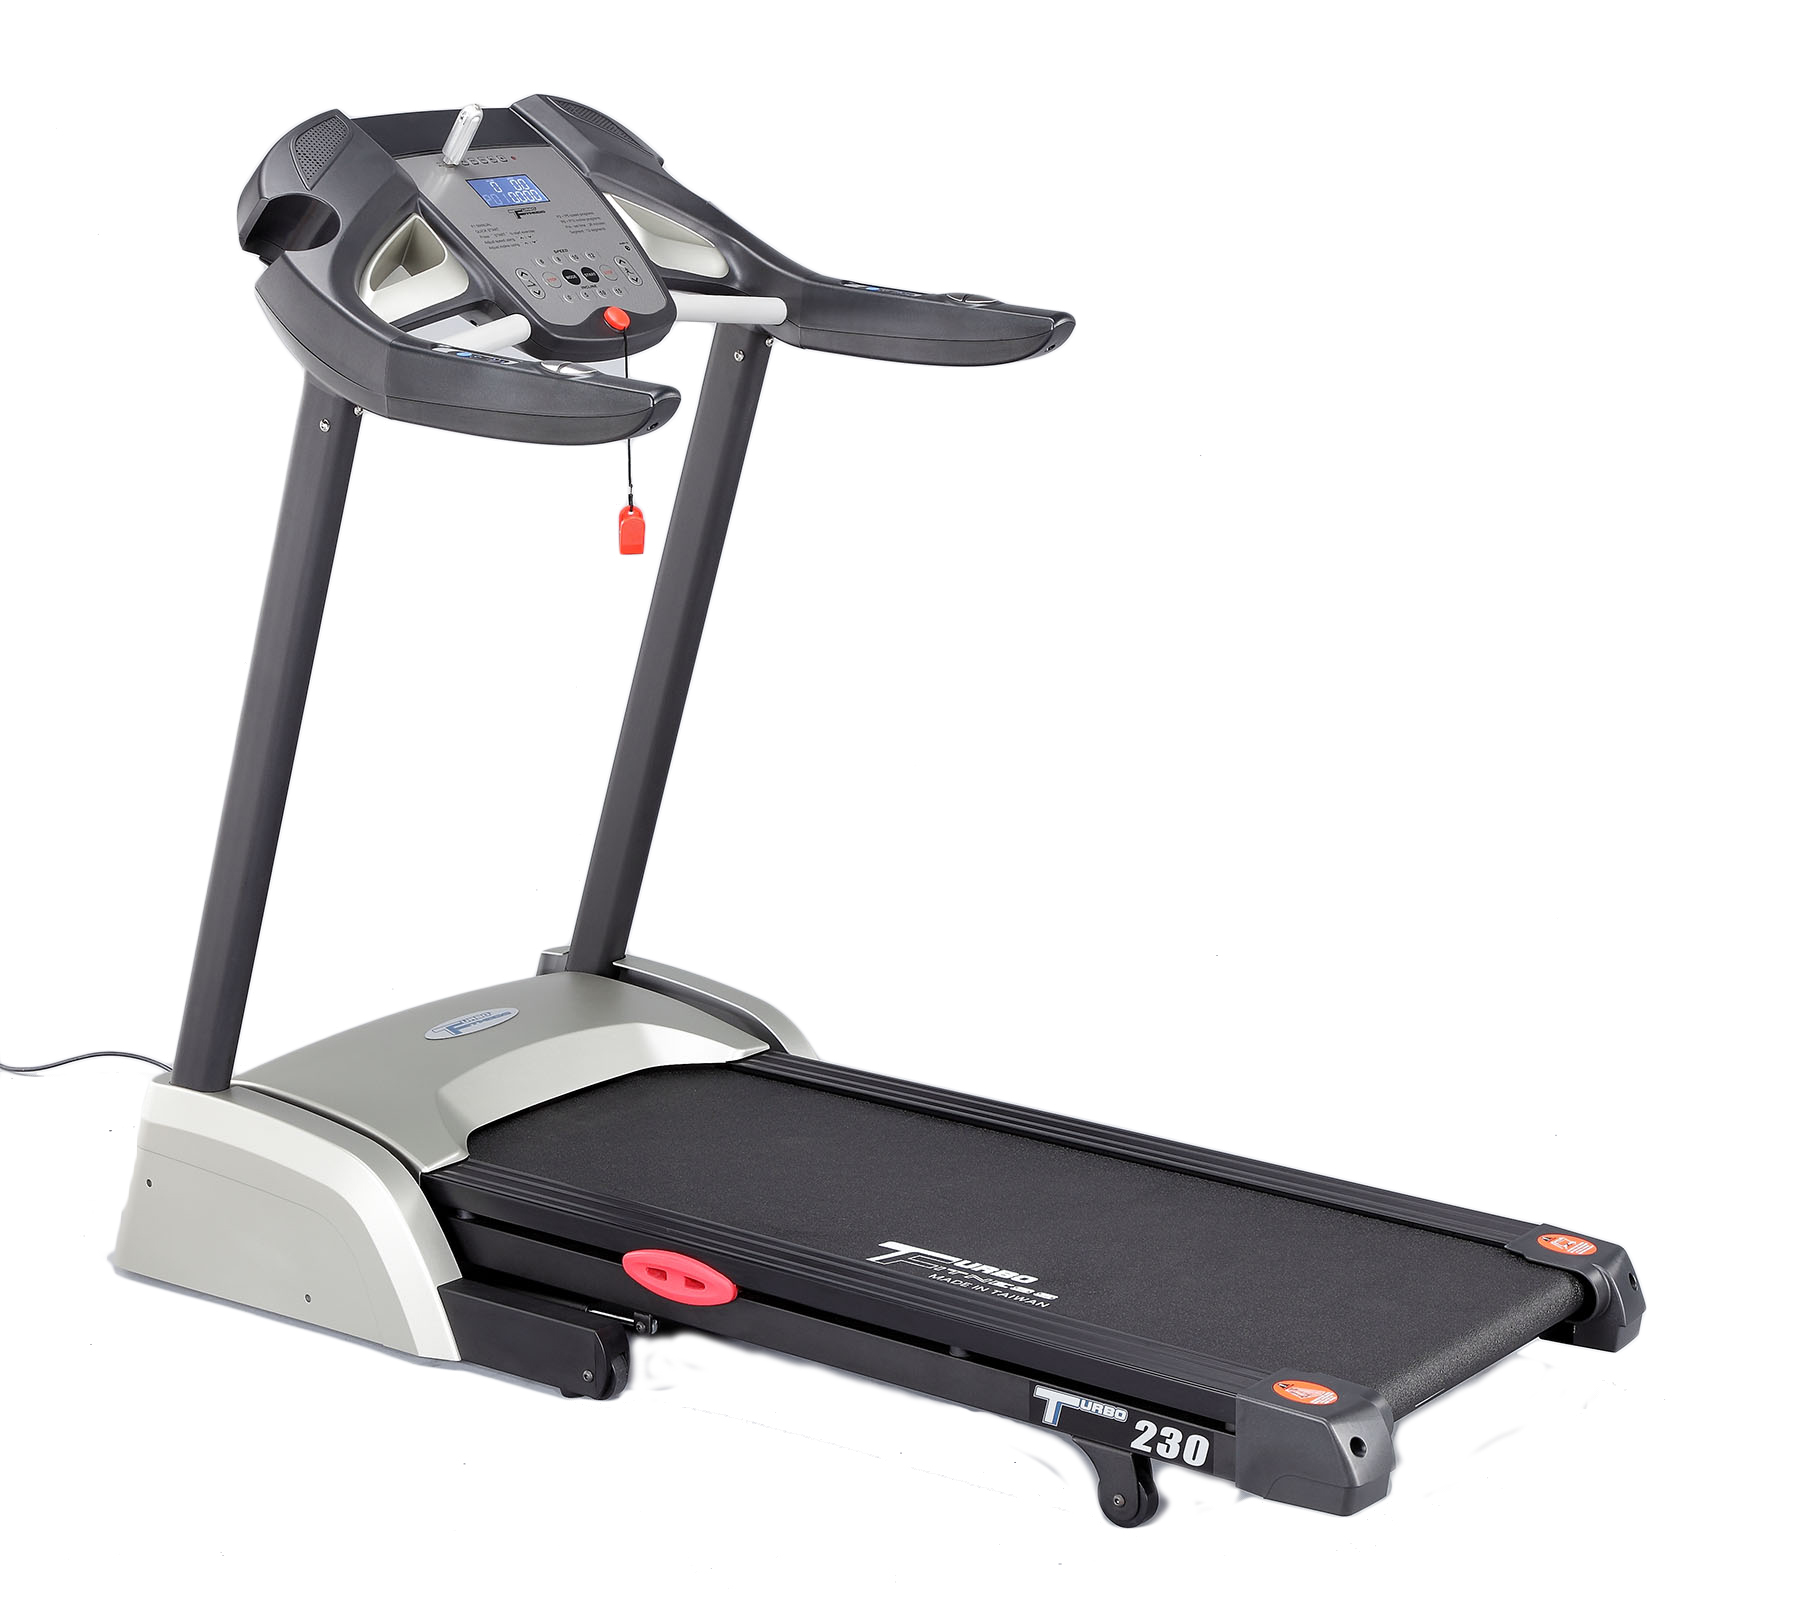 Turbo Fitness 230 treadmills